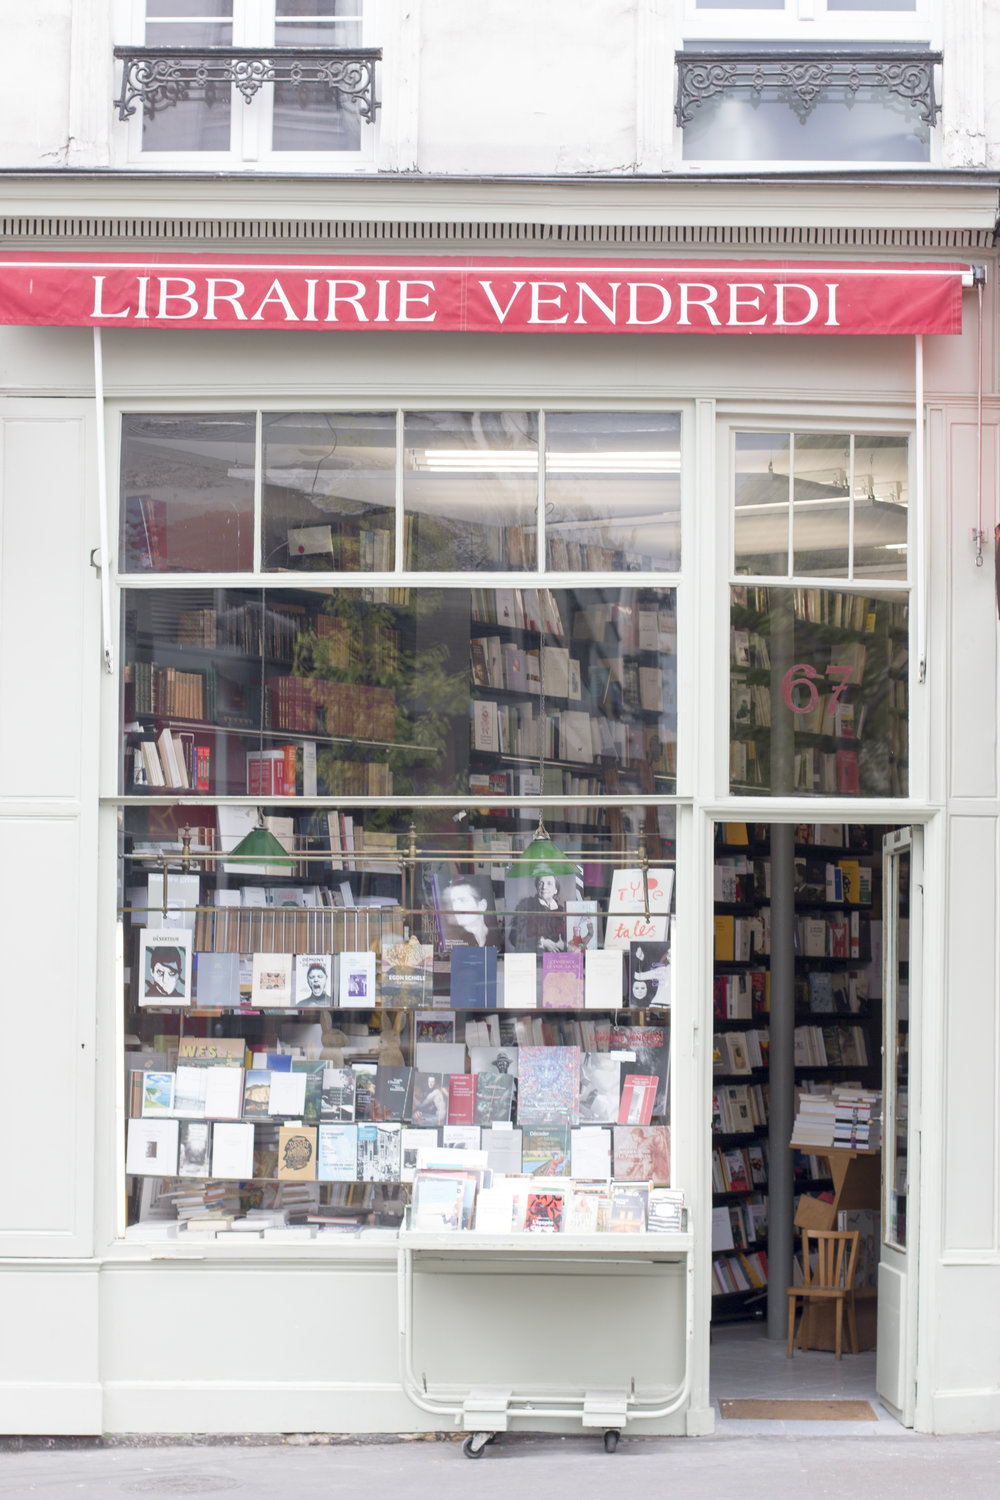 bookshop in montmartre paris, france